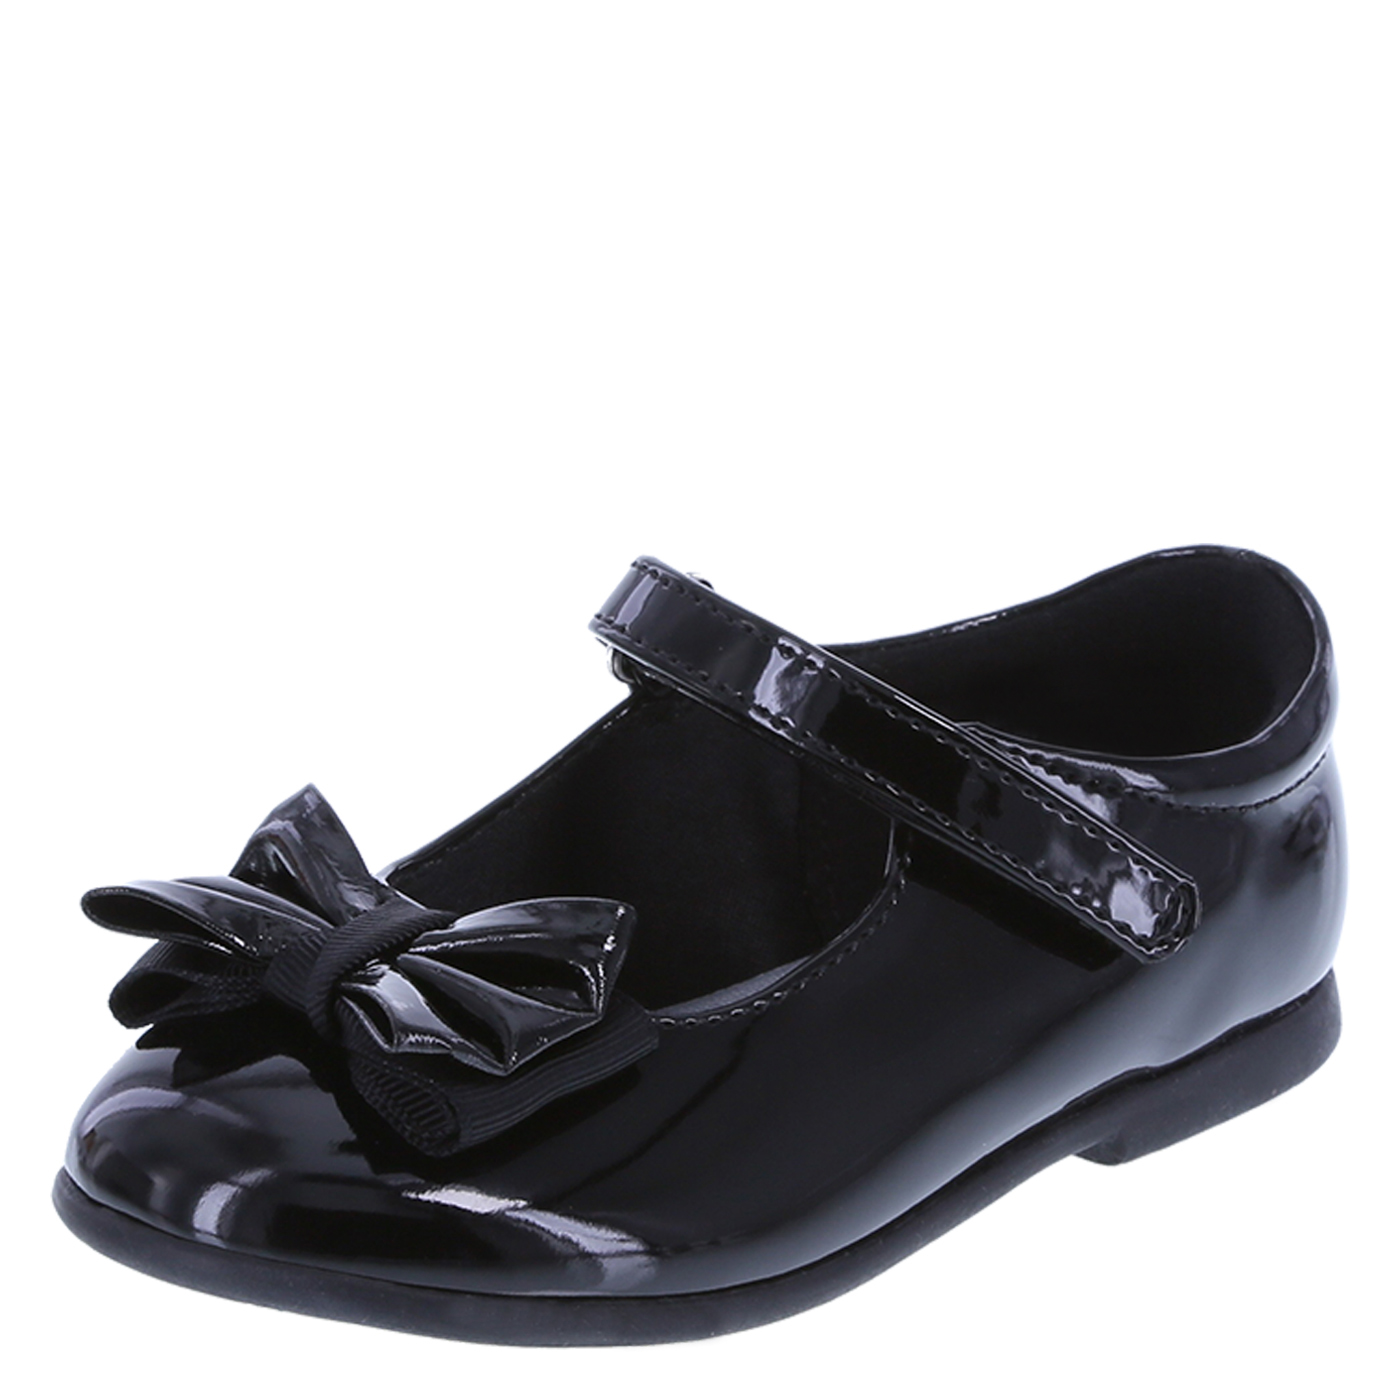 Girls Black Dress Shoes tWmtsDj4